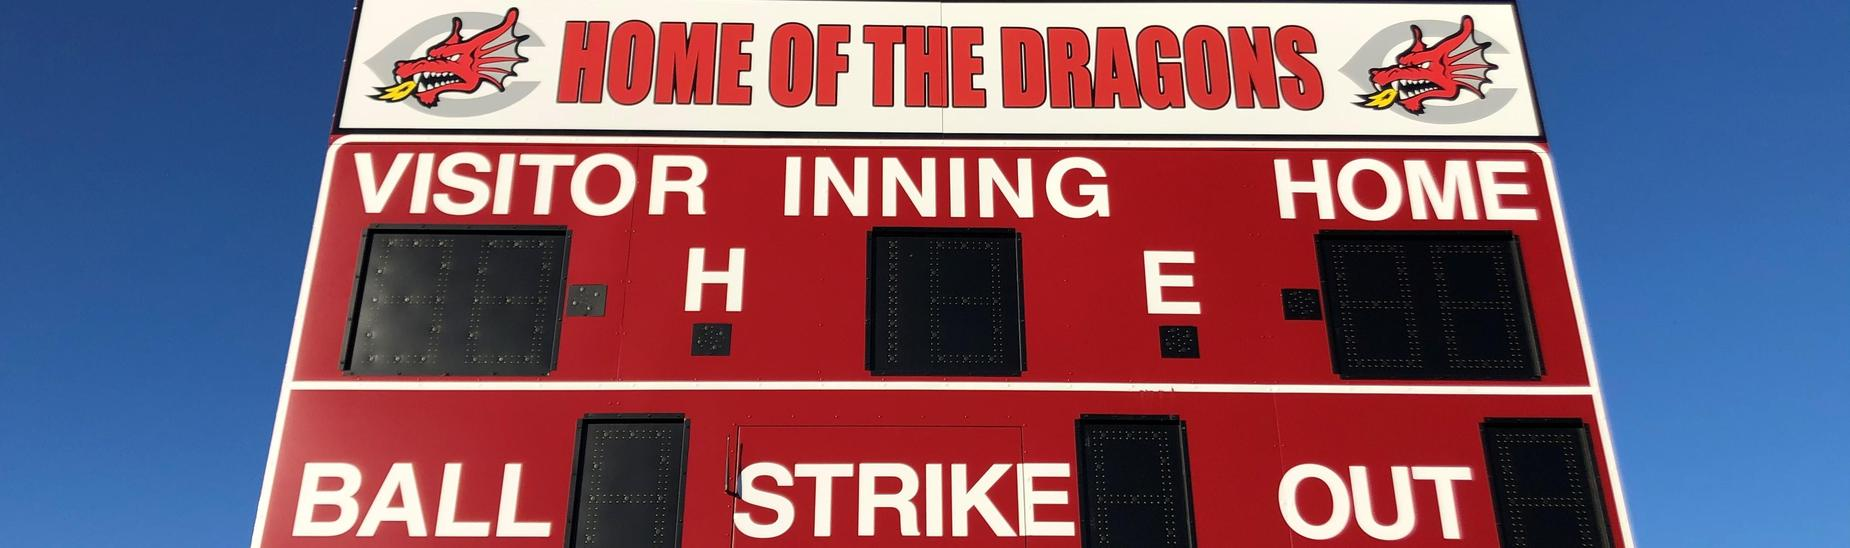 New Baseball Scoreboard